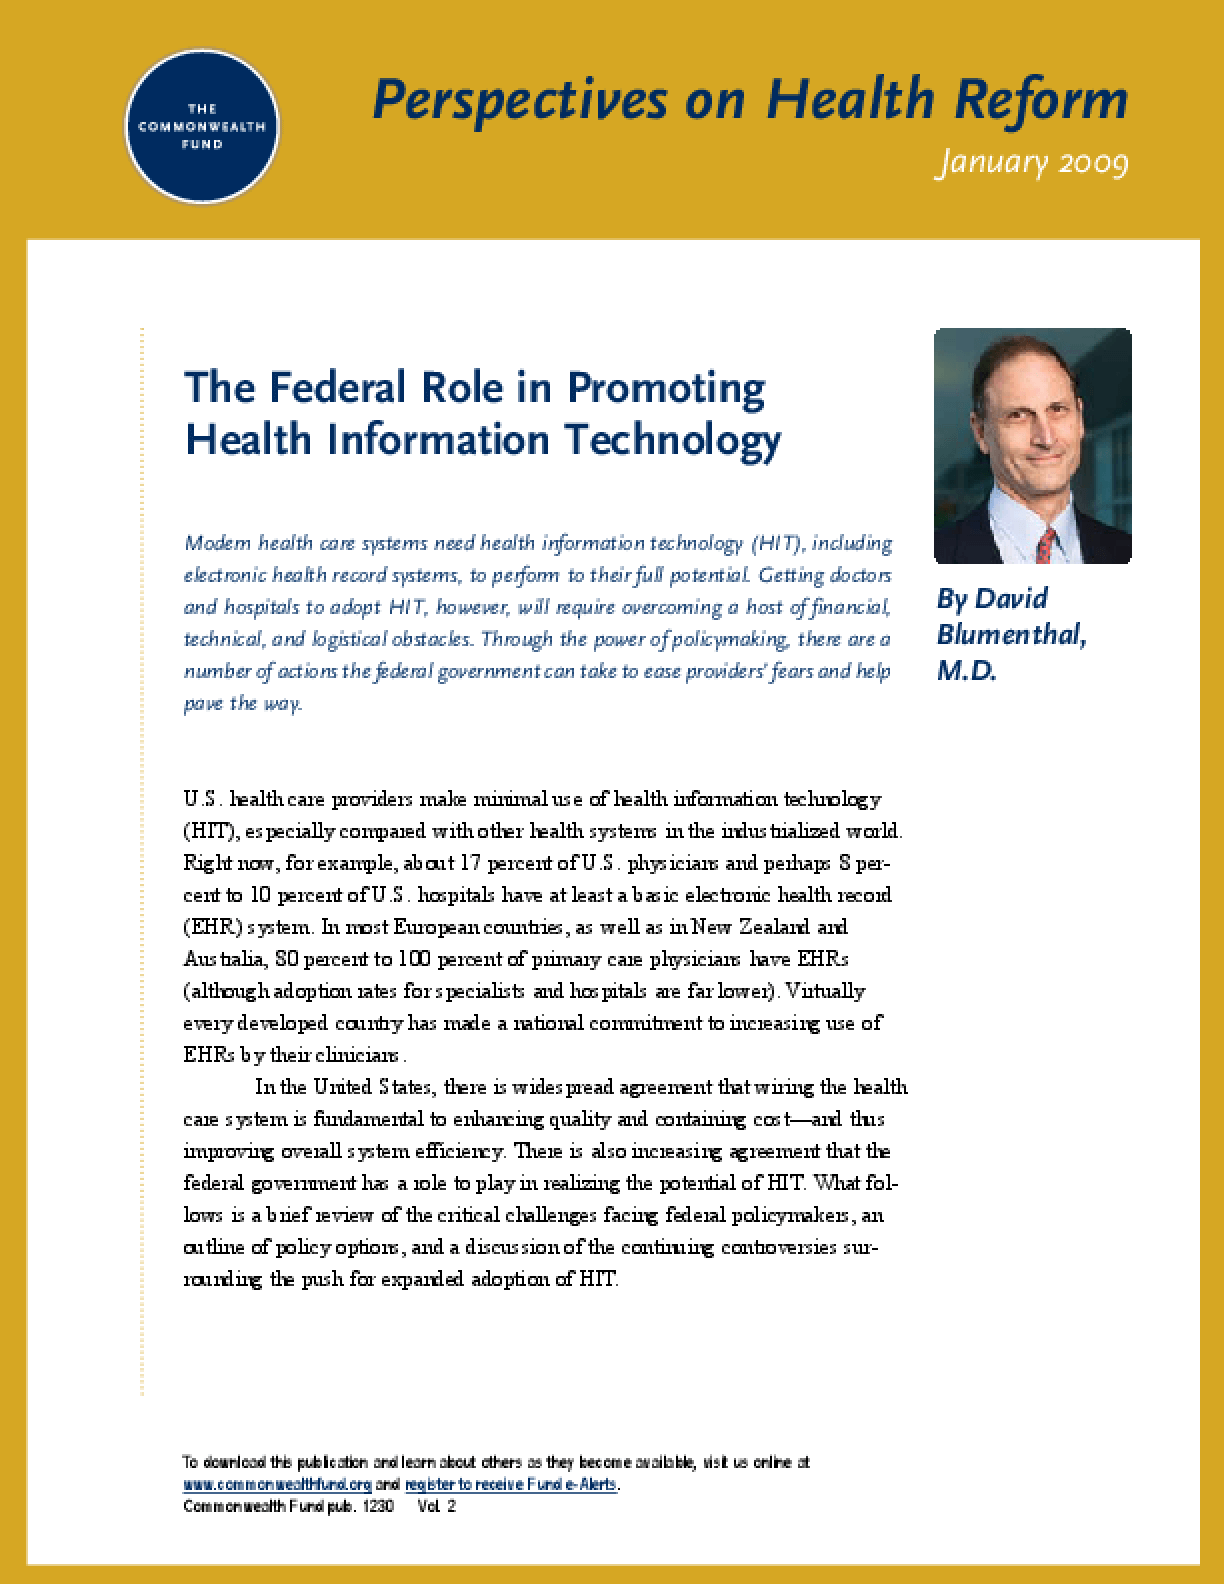 The Federal Role in Promoting Health Information Technology